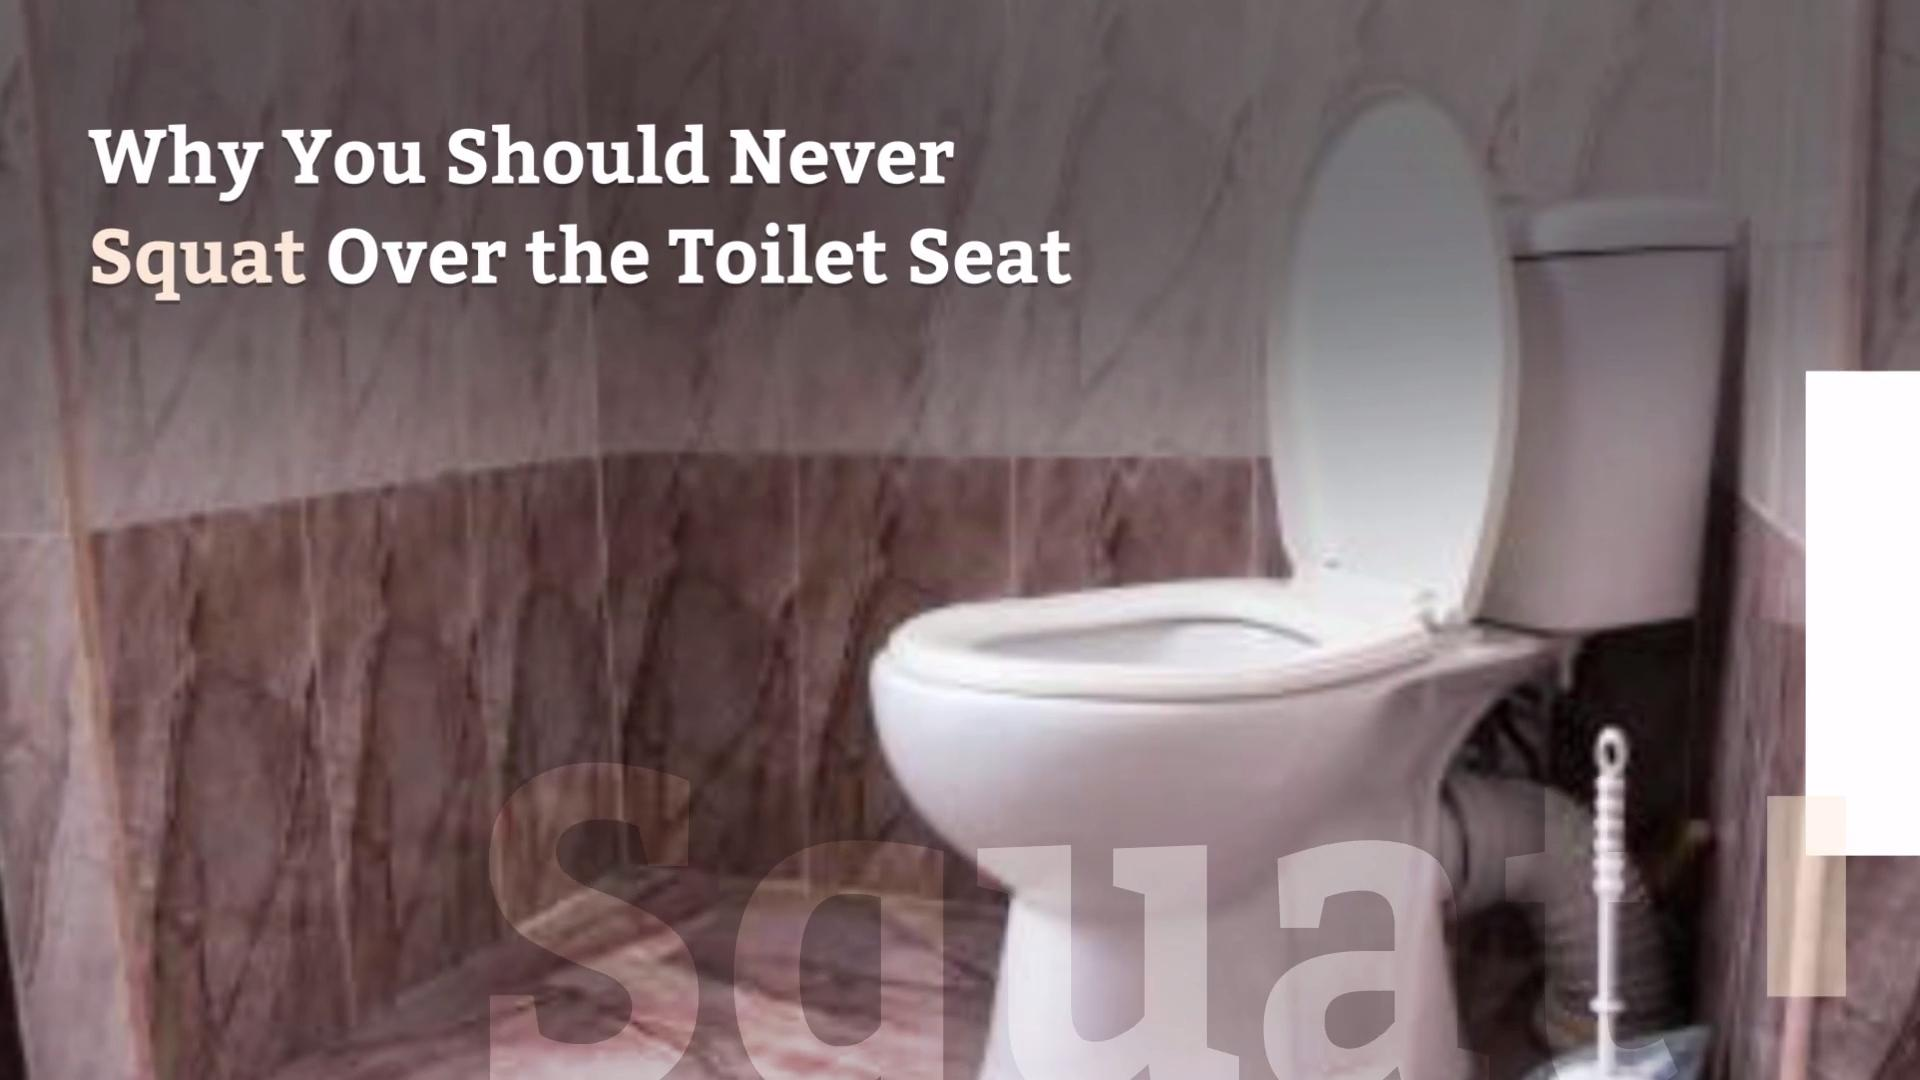 Pleasing Why You Shouldnt Squat Over The Toilet Seat Health Alphanode Cool Chair Designs And Ideas Alphanodeonline